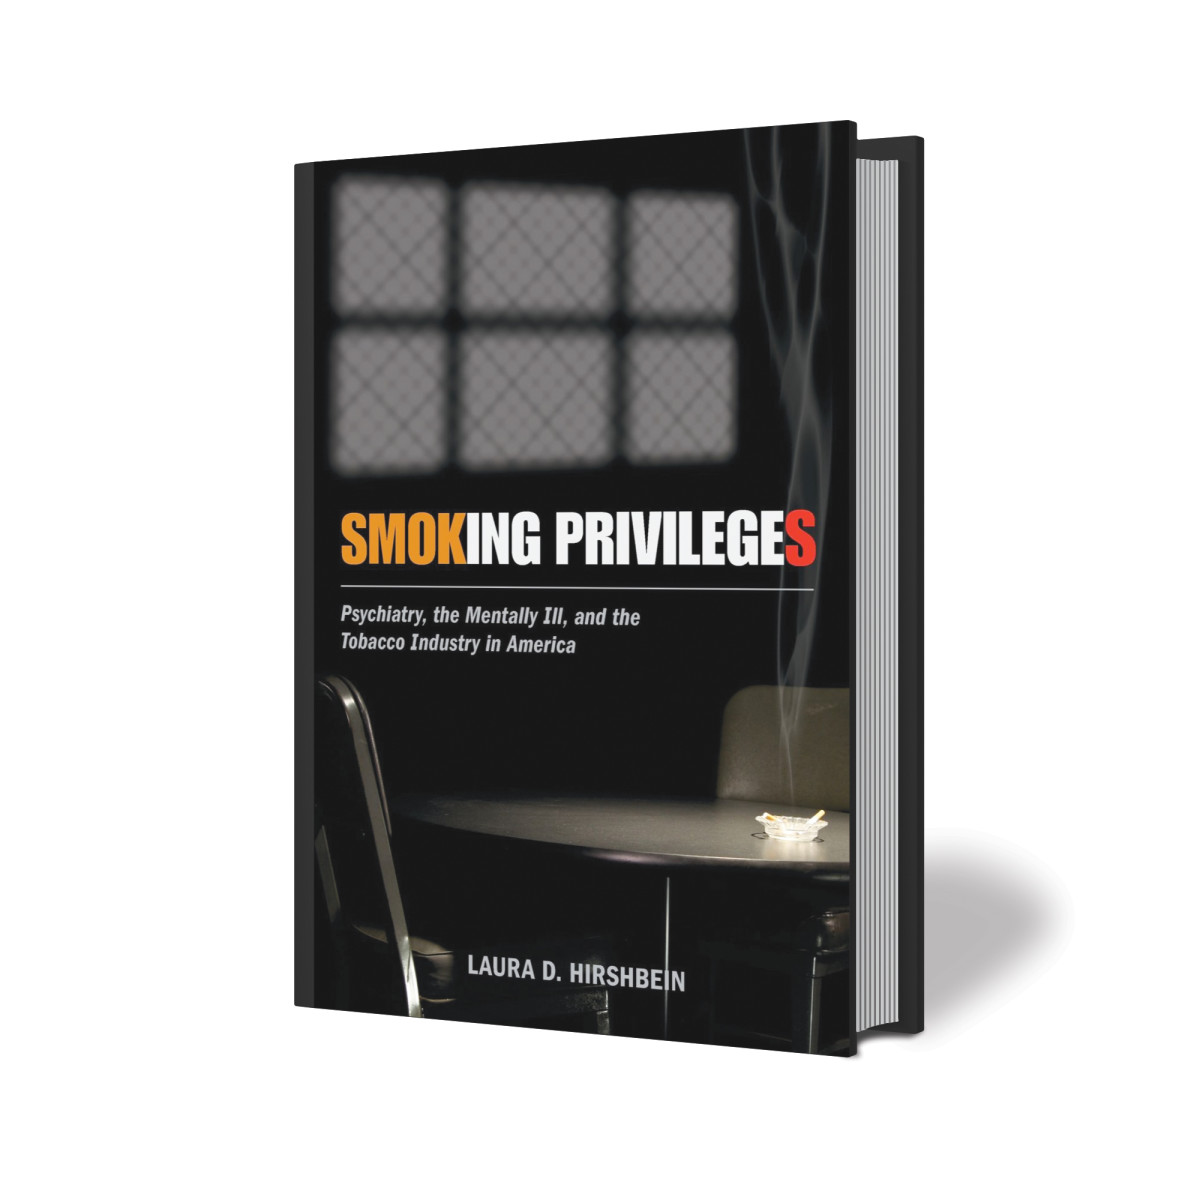 Smoking Priviledges copy.jpg